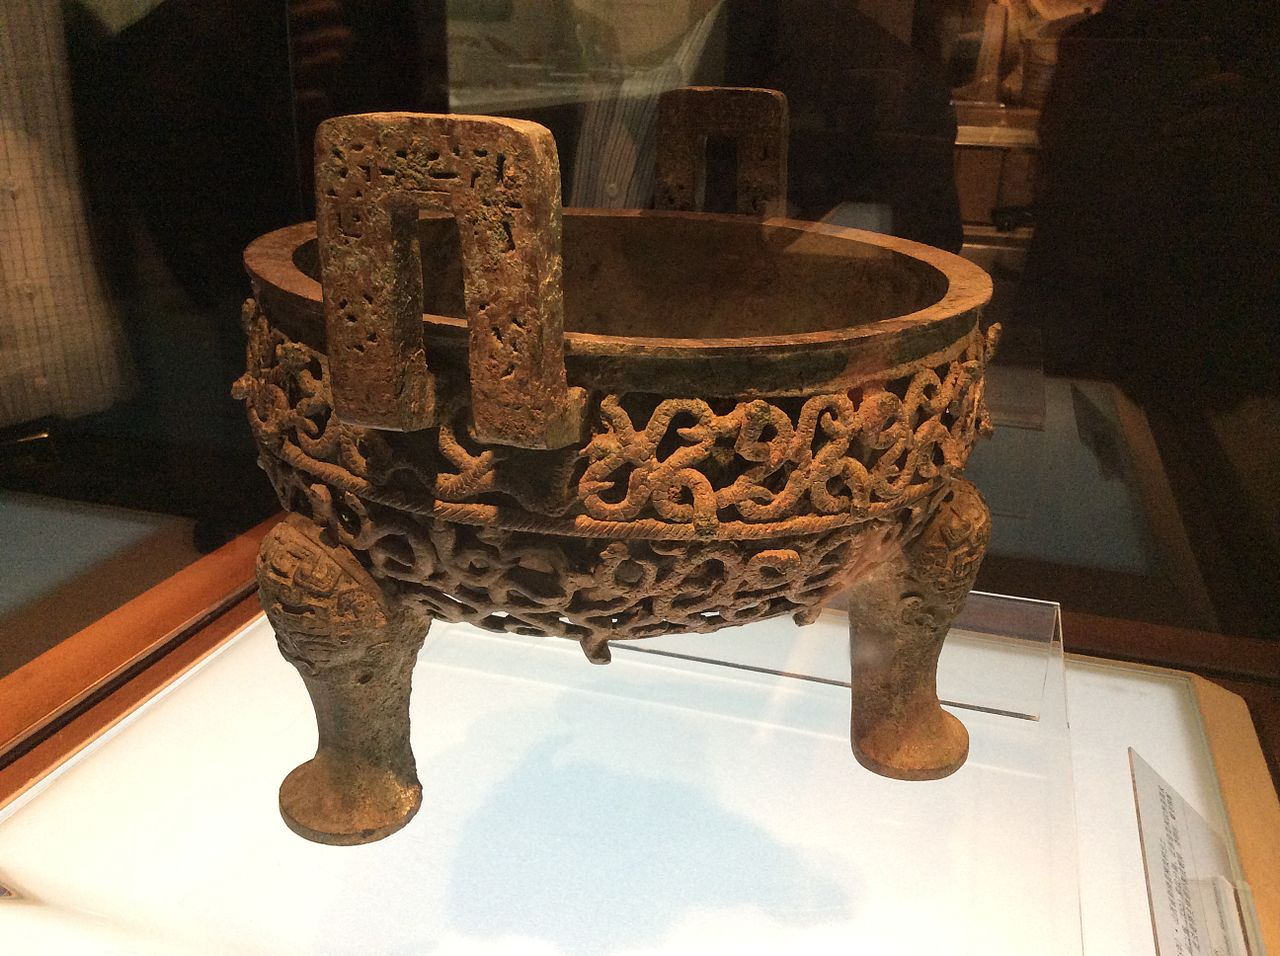 Shanxi_Museum_-_opened-work_ding_with_coiled_serpent_motifs.JPG